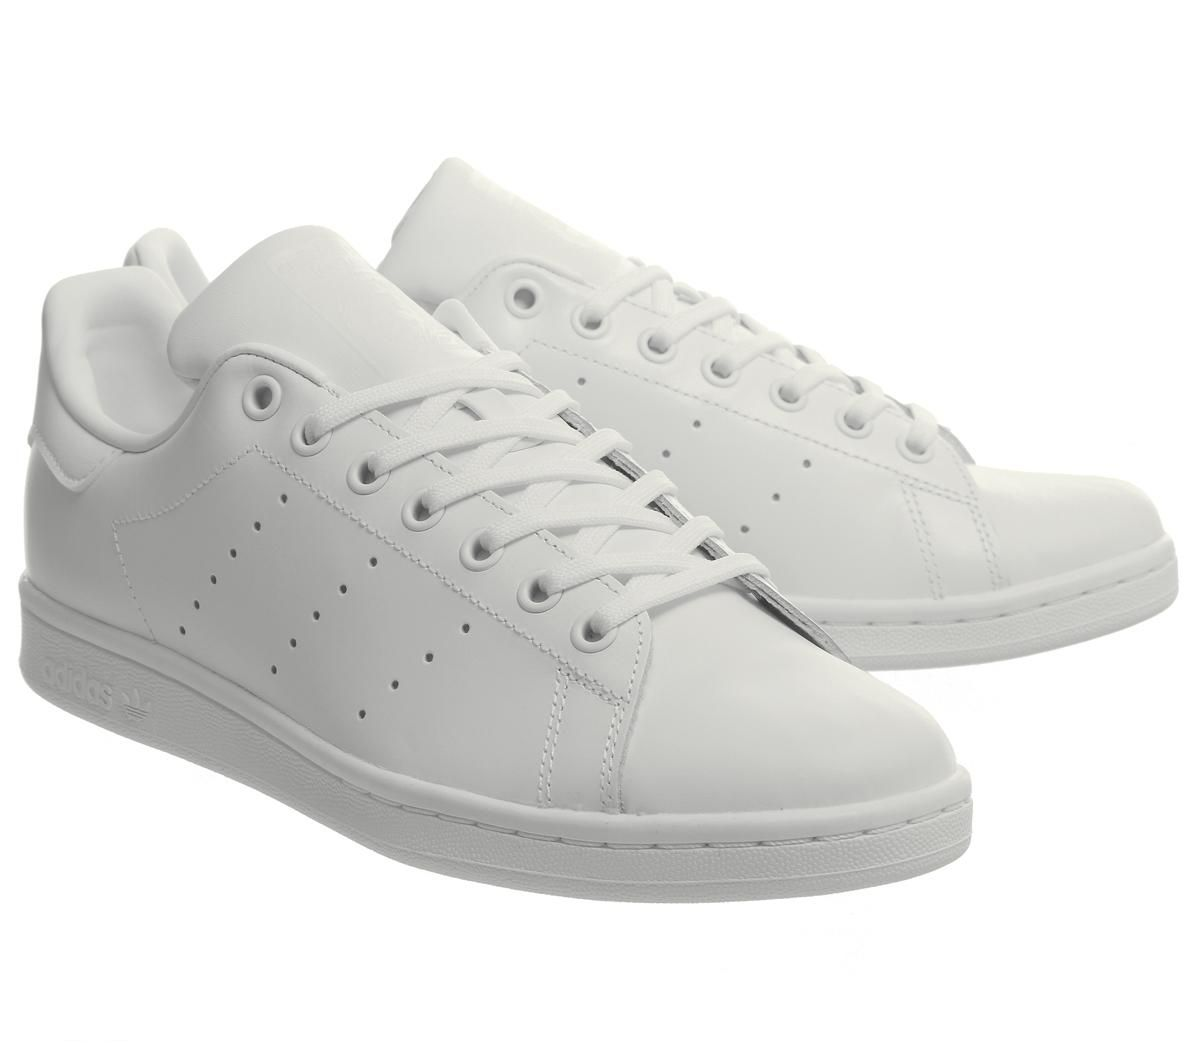 6613dd43 Details about Womens Adidas Stan Smith Flash Trainers White Mono Trainers  Shoes